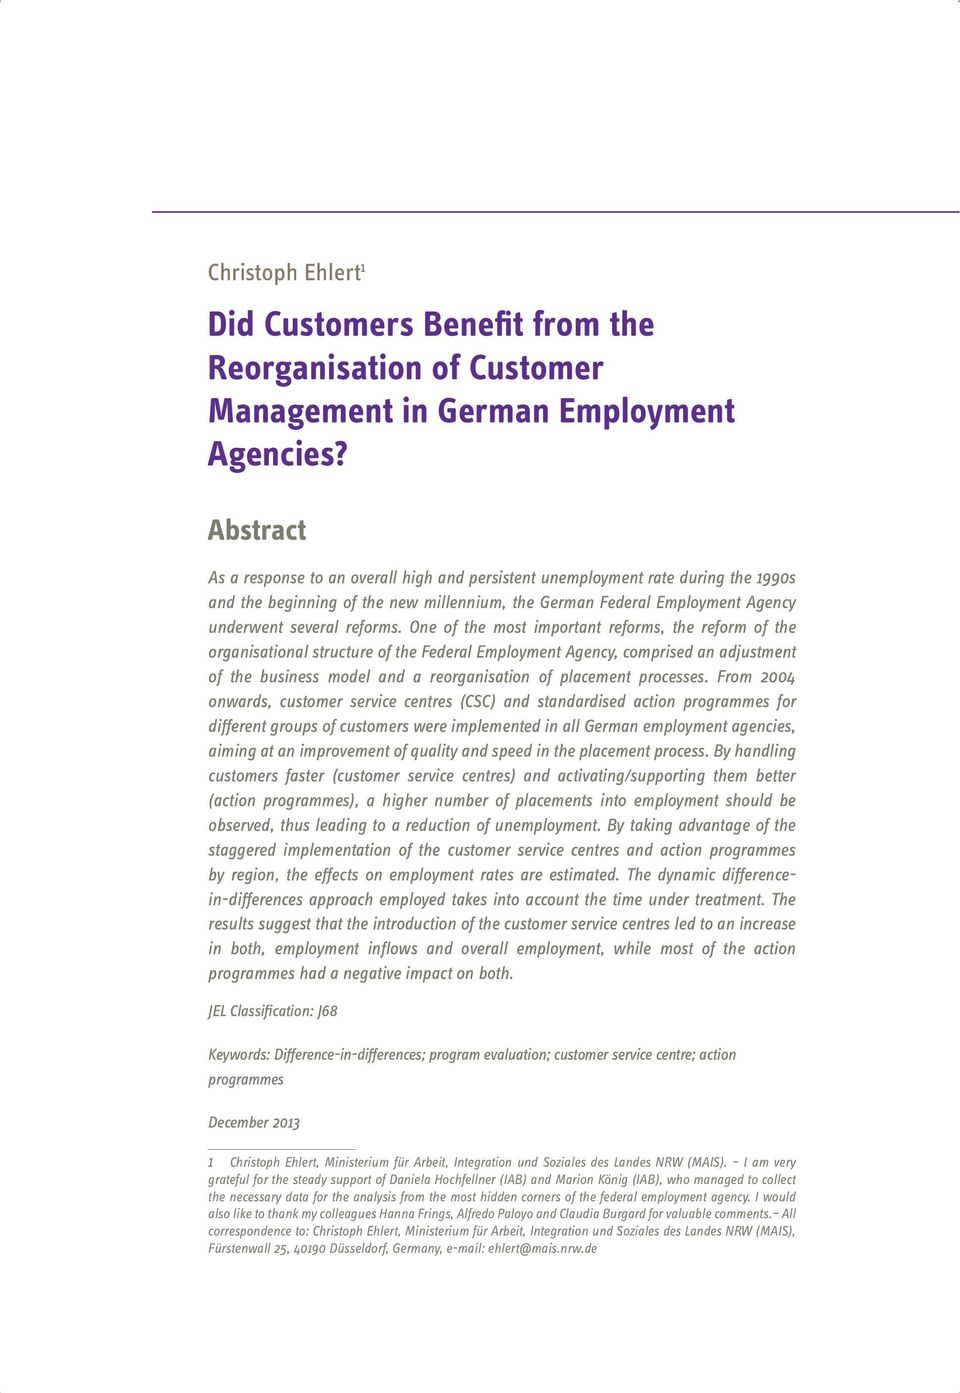 One of the most important reforms, the reform of the organisational structure of the Federal Employment Agency, comprised an adjustment of the business model and a reorganisation of placement